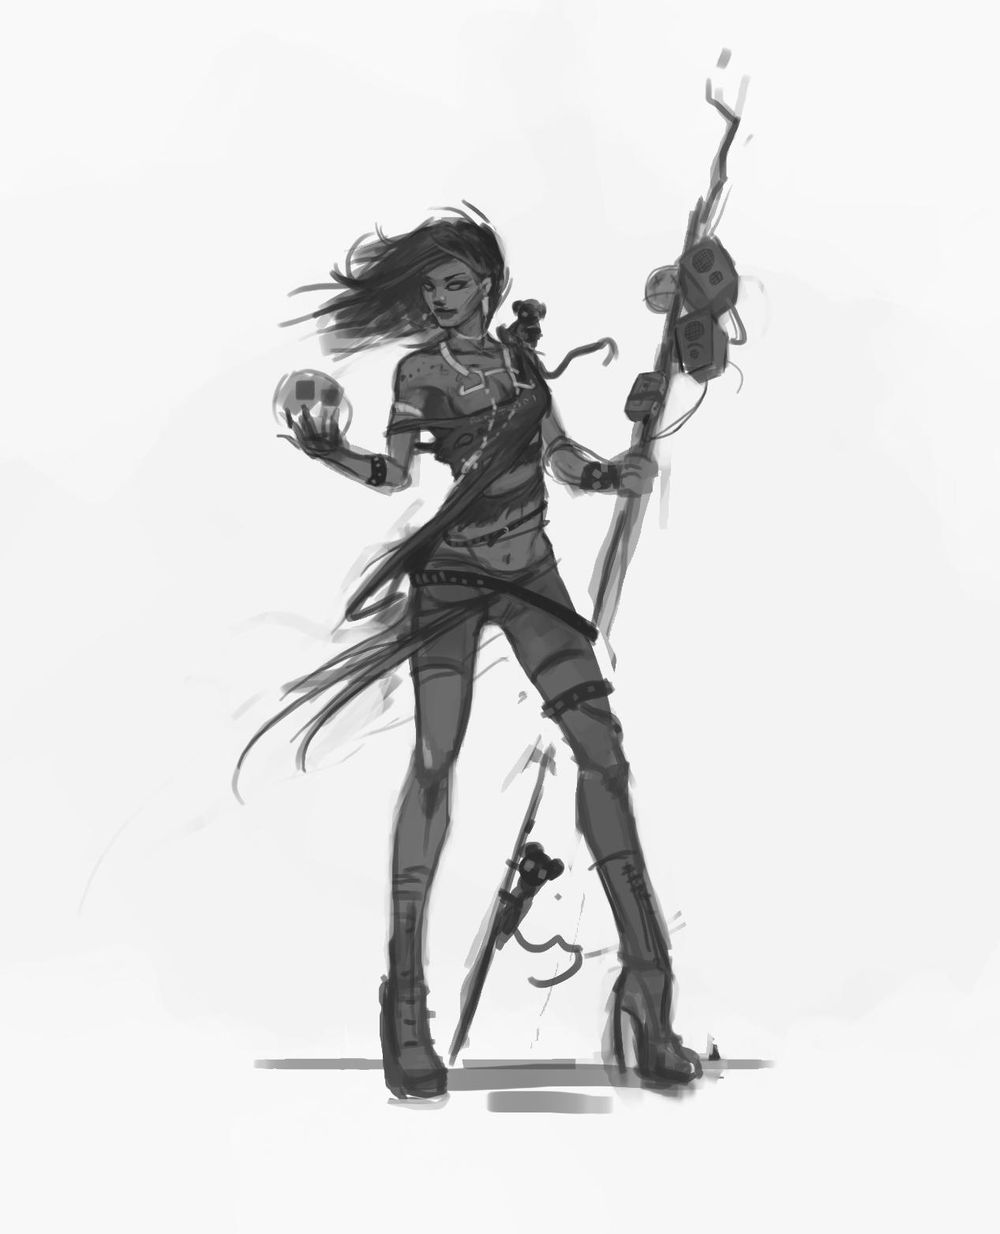 Heavy Metal Sorcerer - image 3 - student project